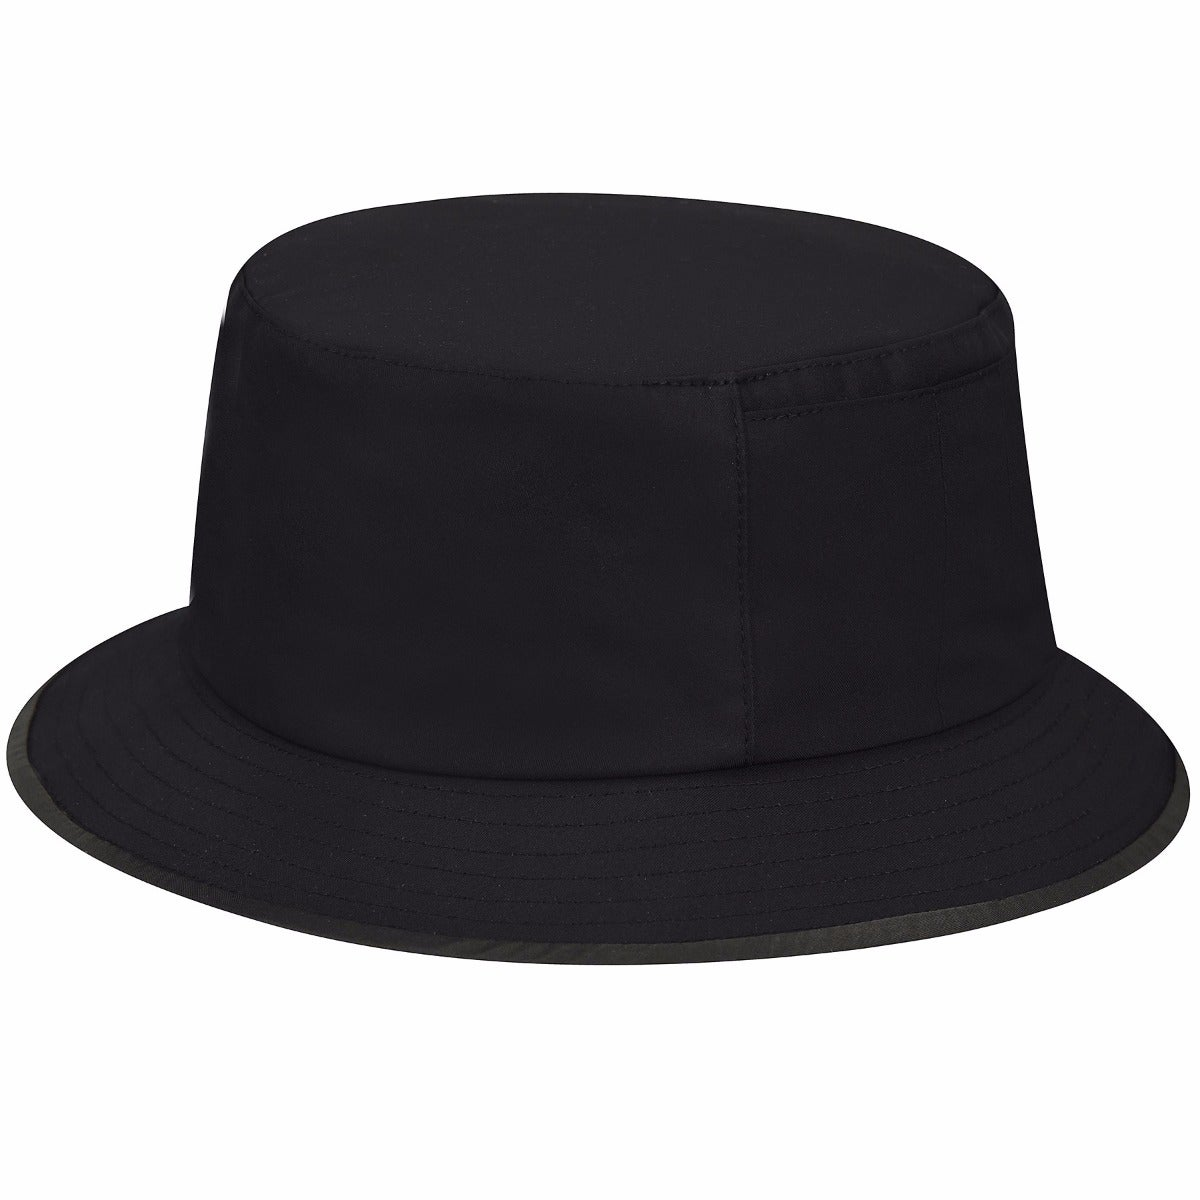 Bailey of Hollywood Clapcott Bucket Hat in Black